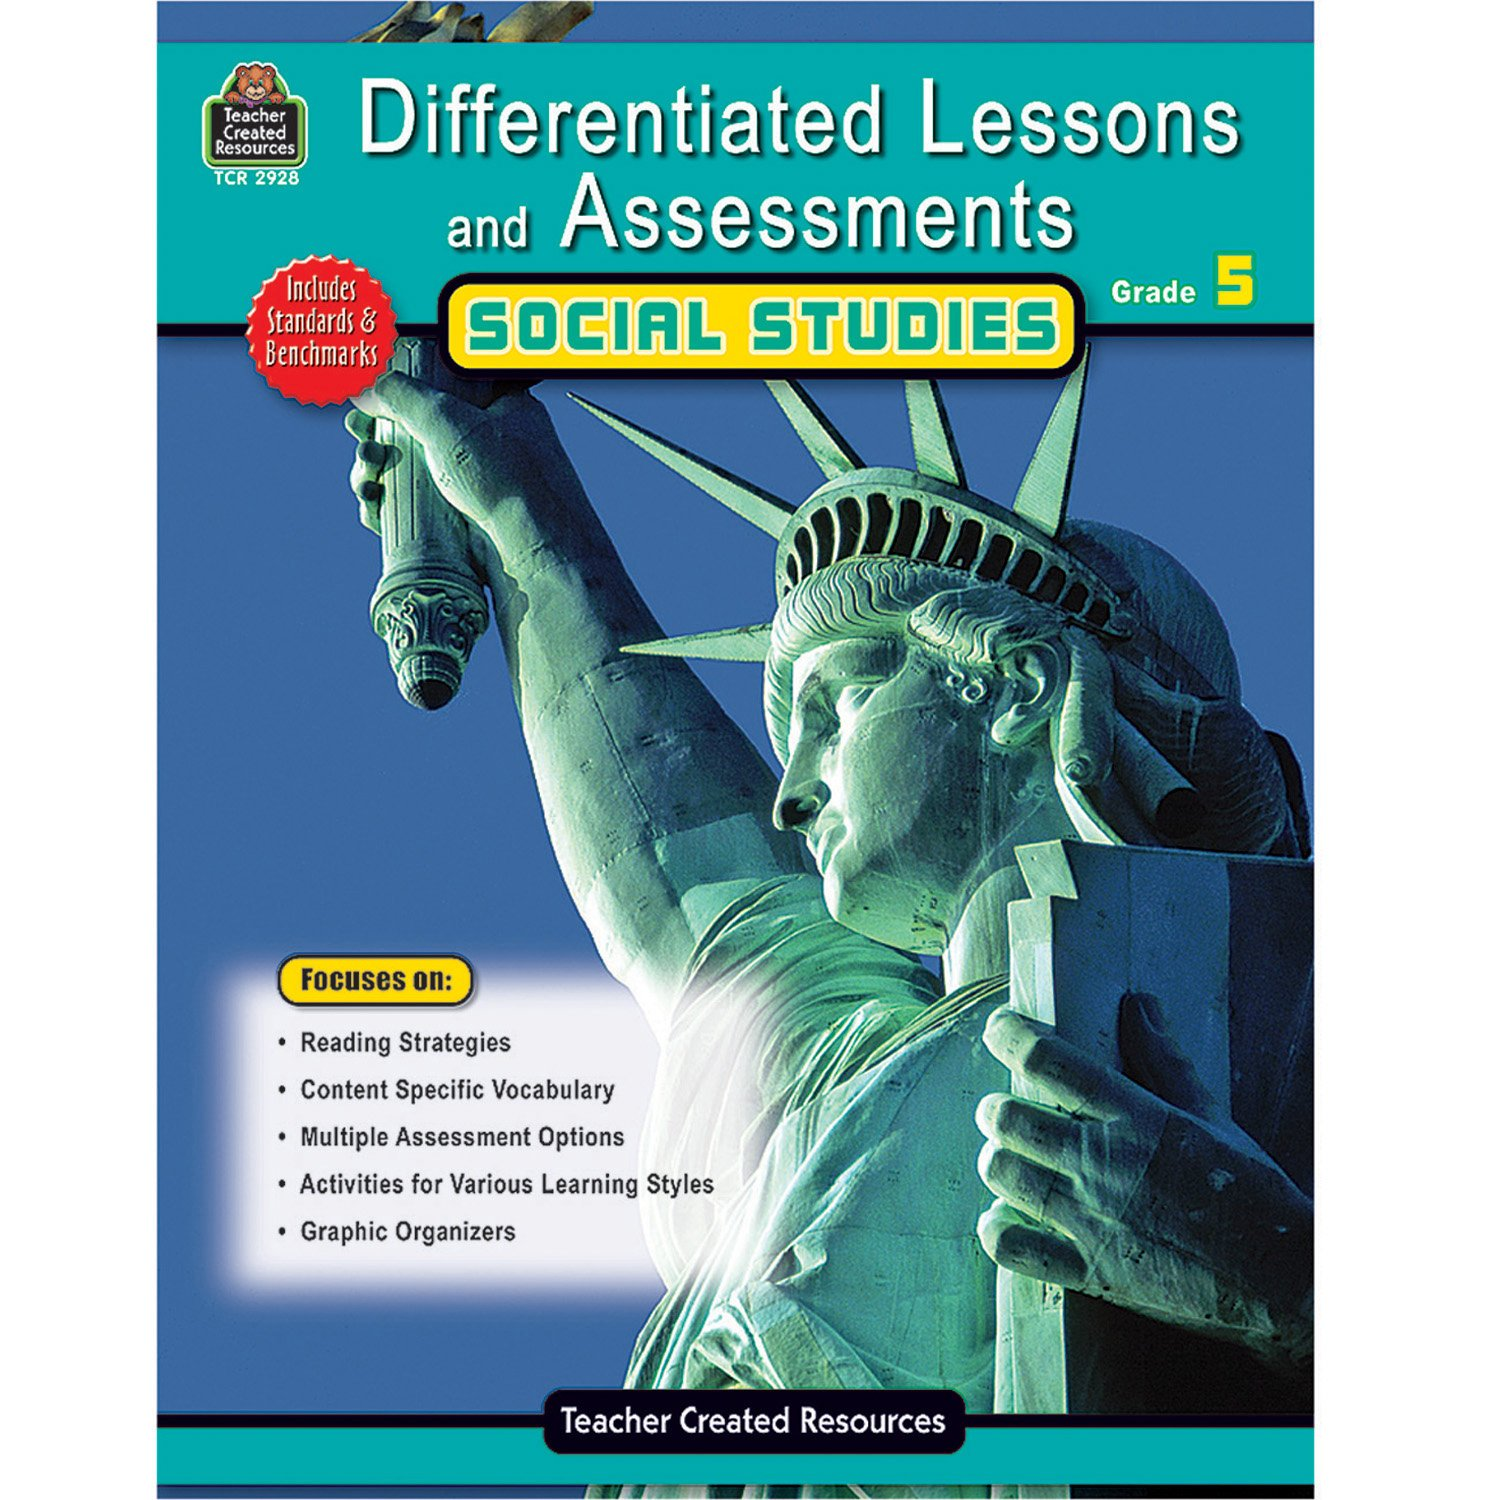 Amazon.com: Differentiated Lessons & Assessments: Social Studies Grd 5  (9781420629286): Julia Mcmeans: Books